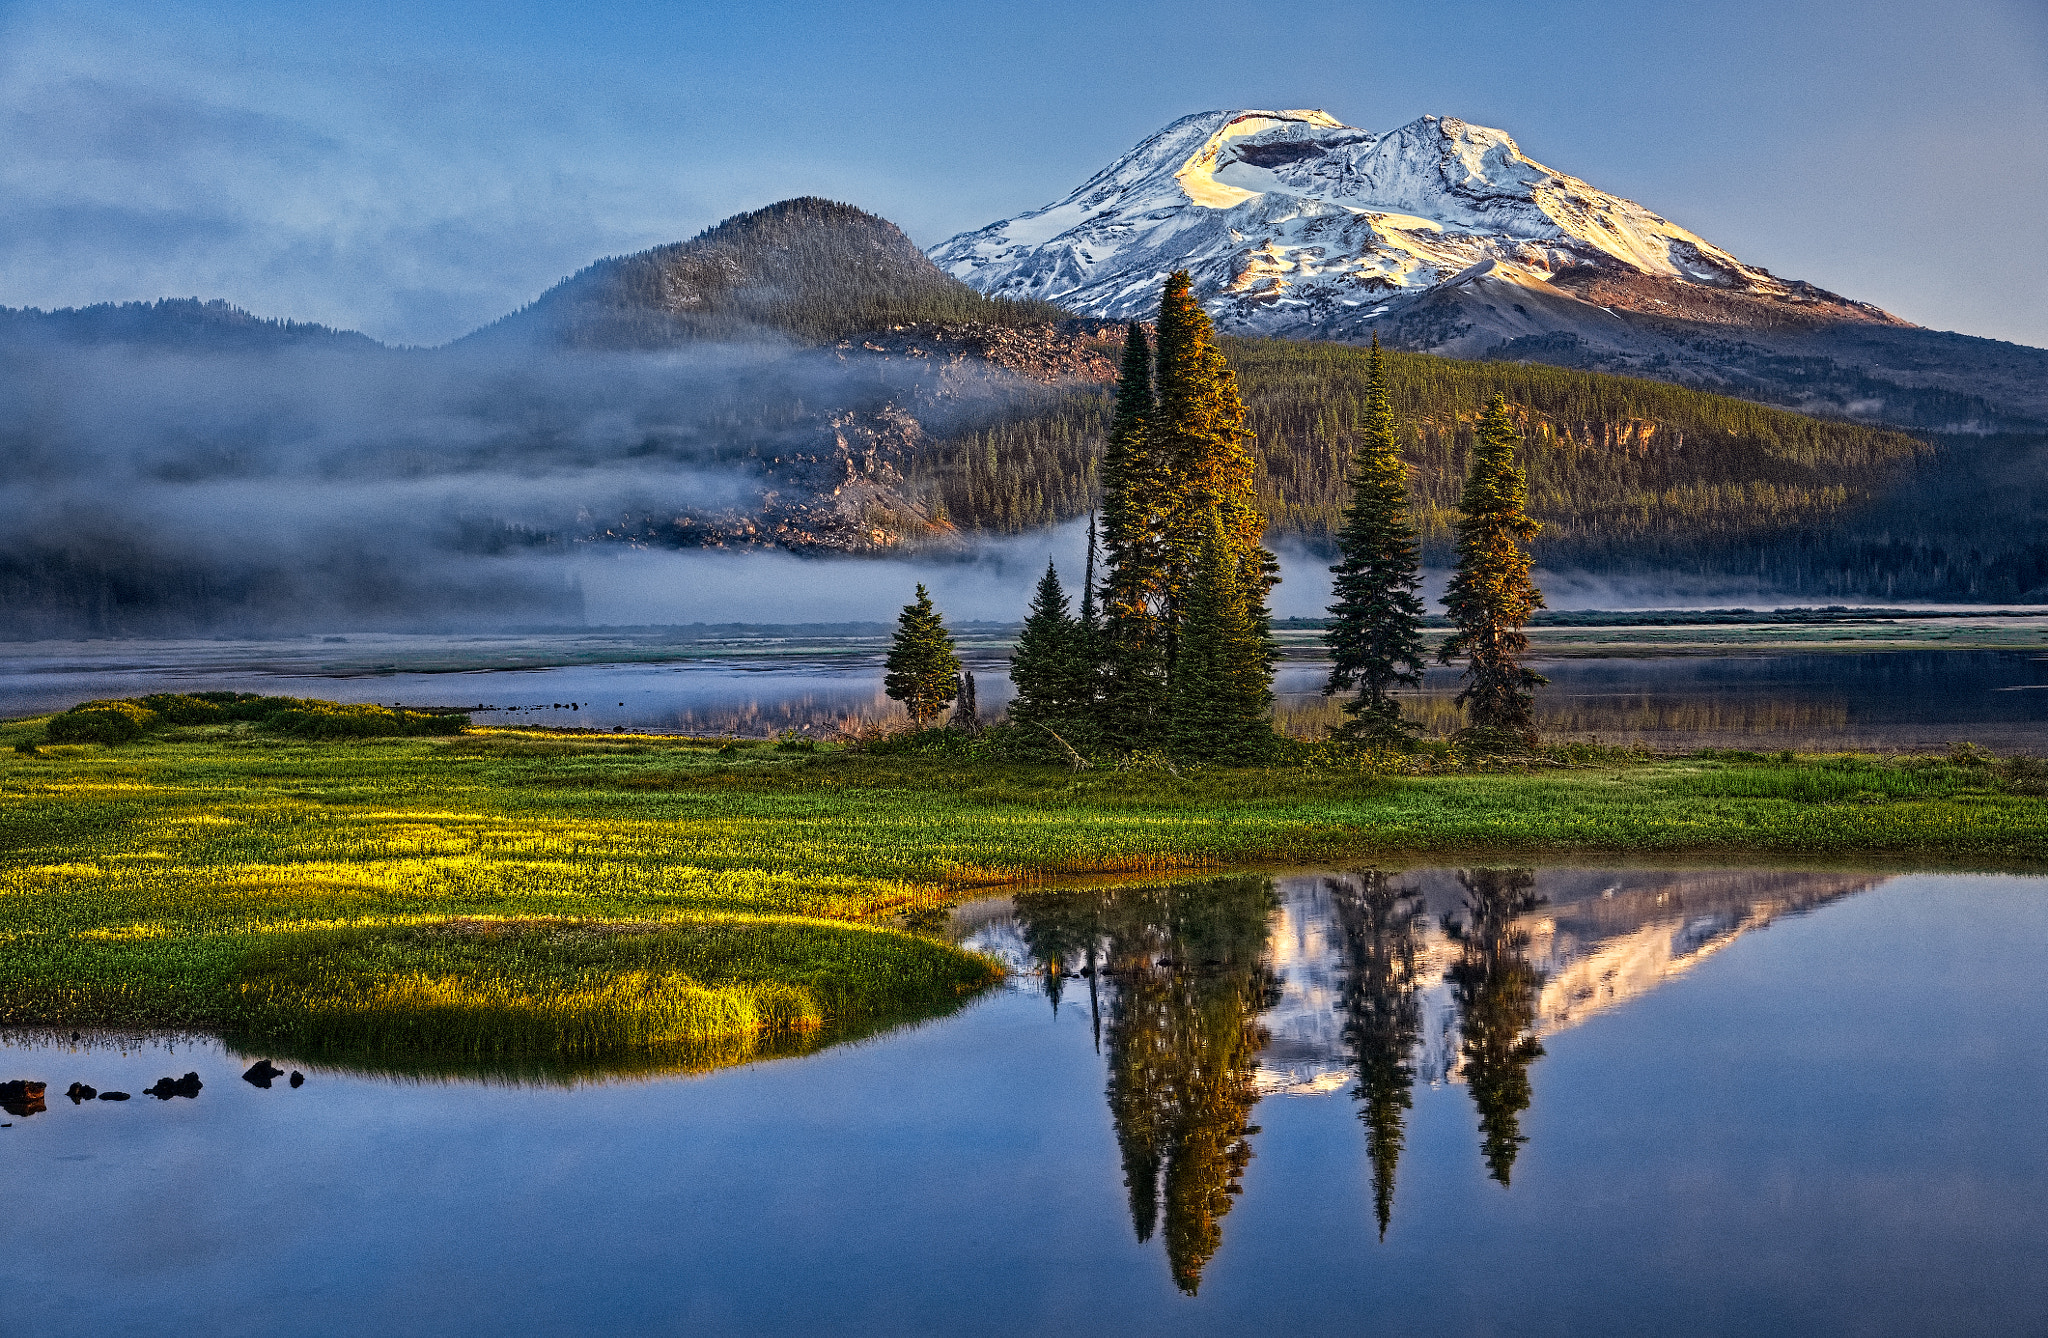 Photograph Sparks Lake Sunrise #4320 by Massimo Squillace on 500px